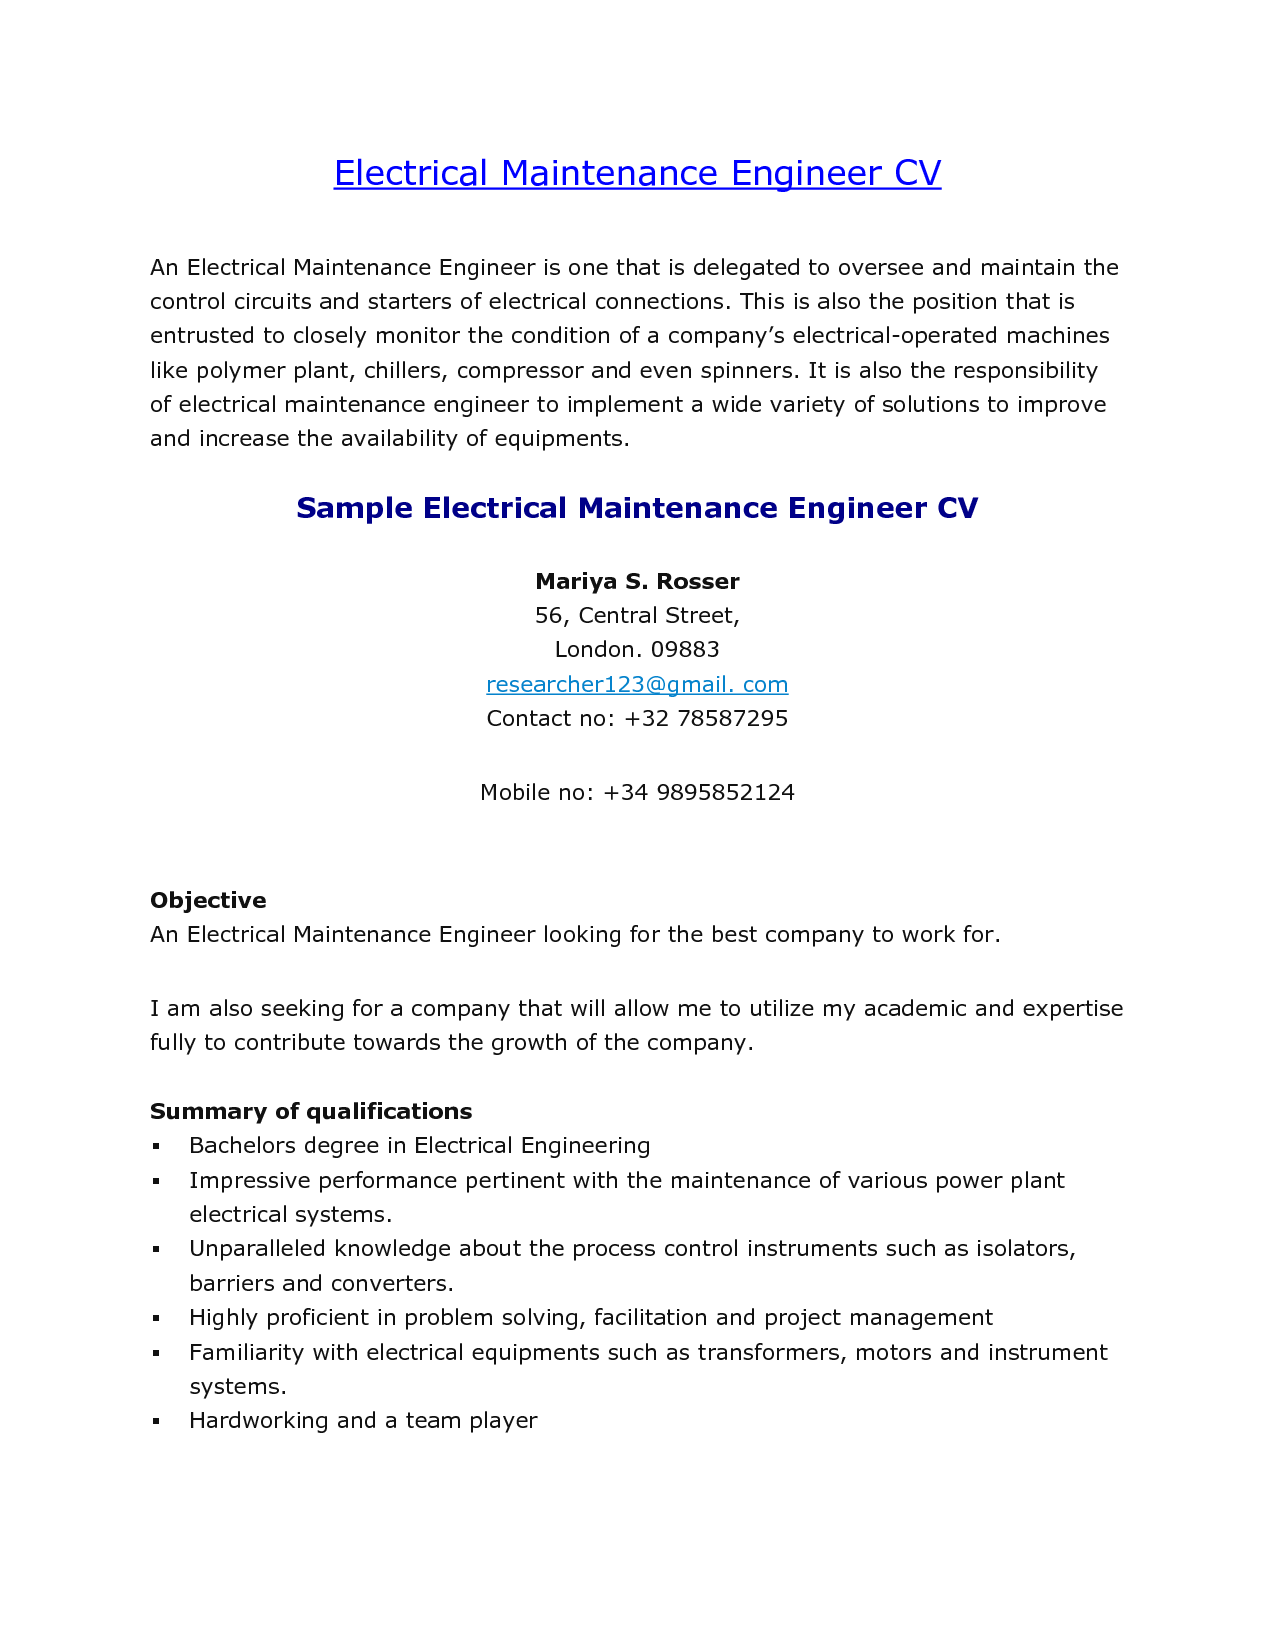 sample resume of electrical maintenance engineer